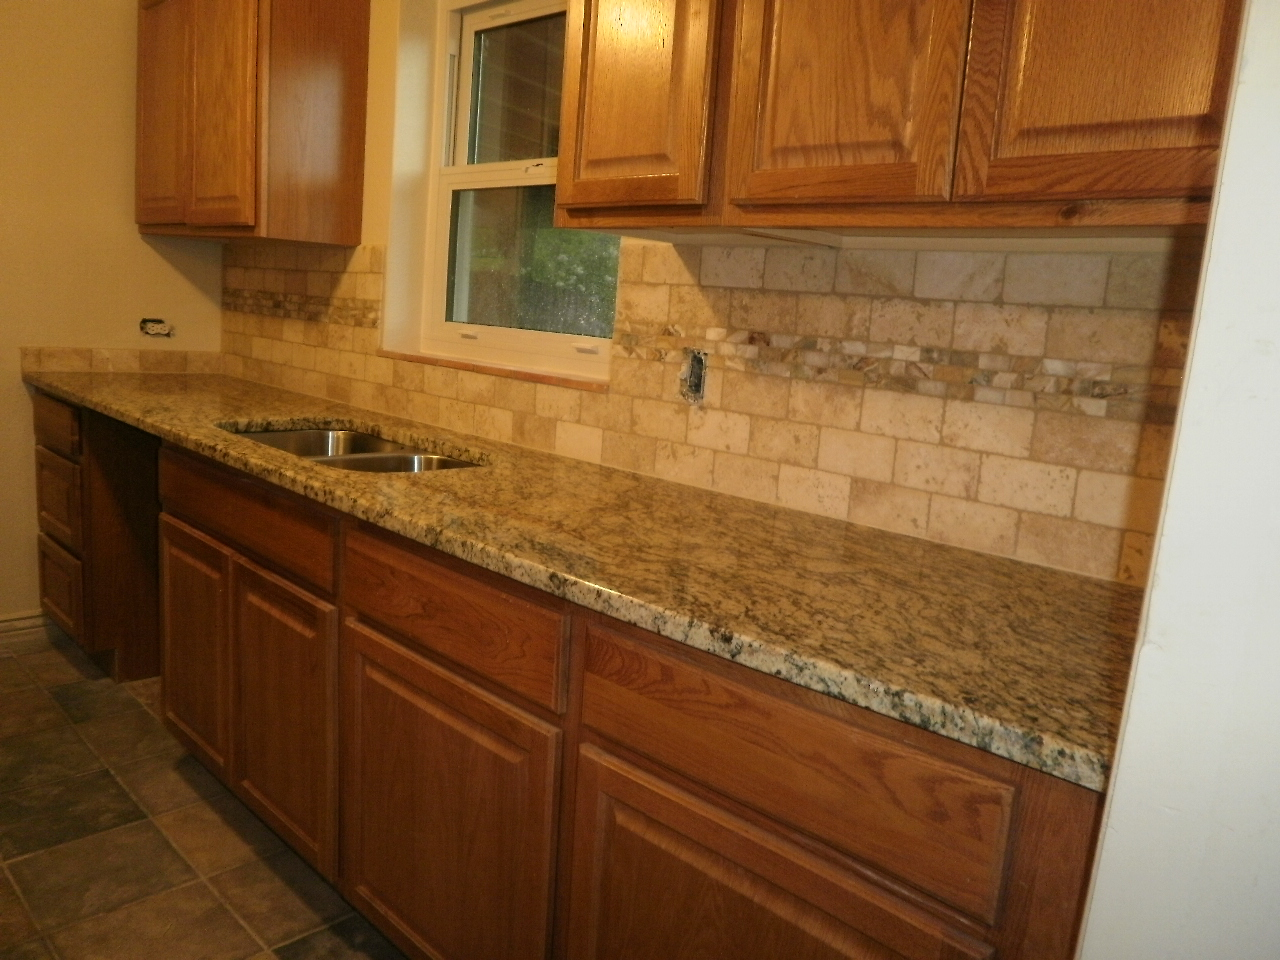 Integrity Installations A Division Of Front Range Backsplash Just Completed 3x6